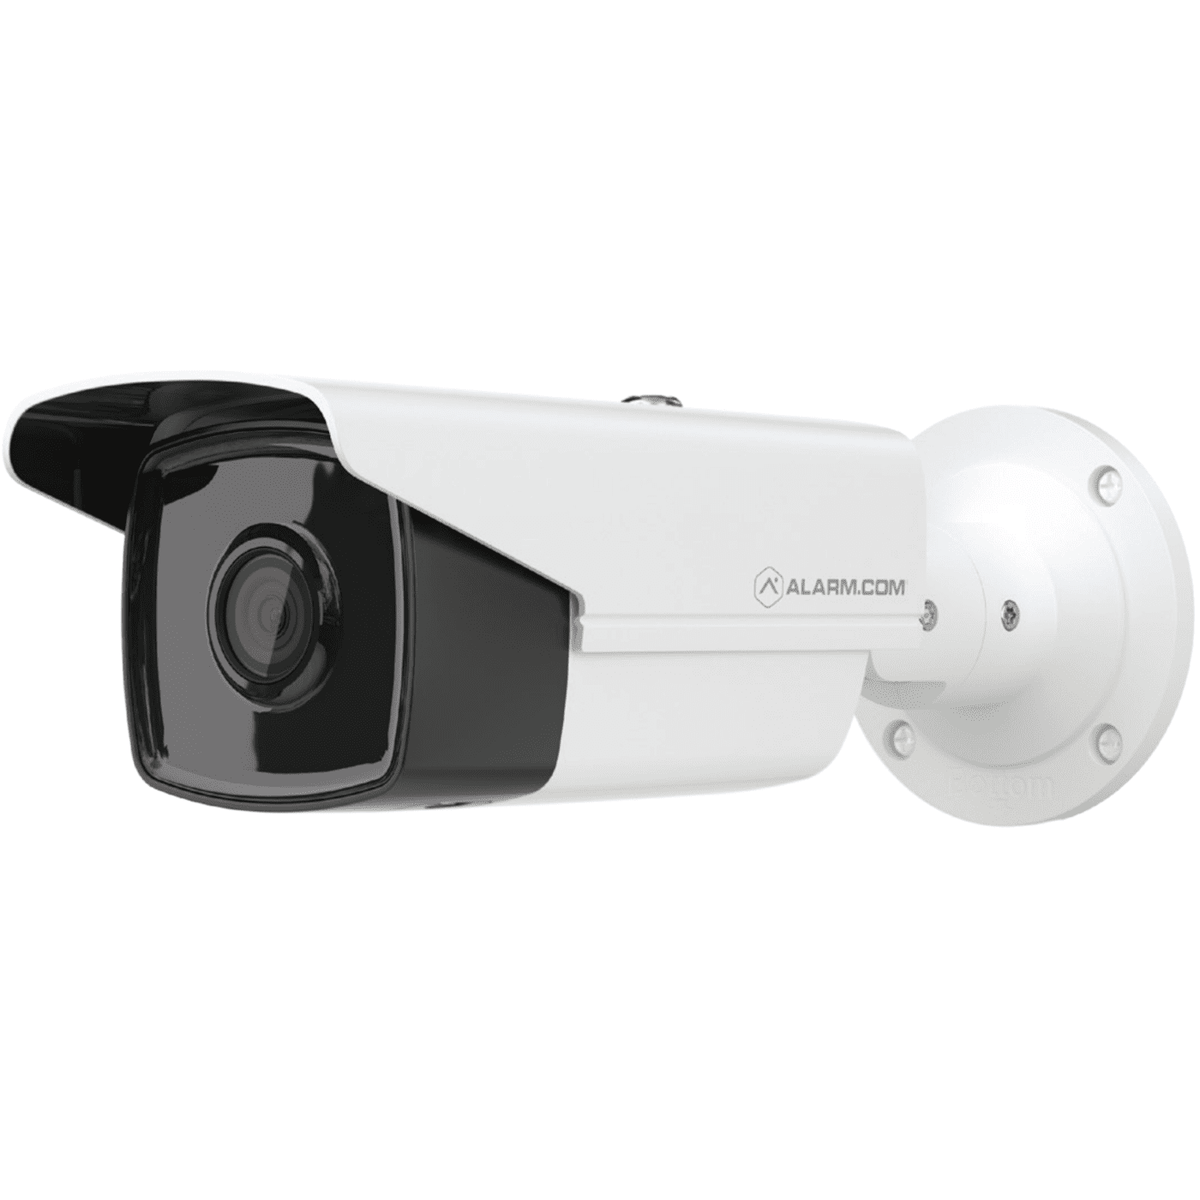 Alarm.com Indoor/Outdoor Bullet Camera 1080P (ADC-VC736)